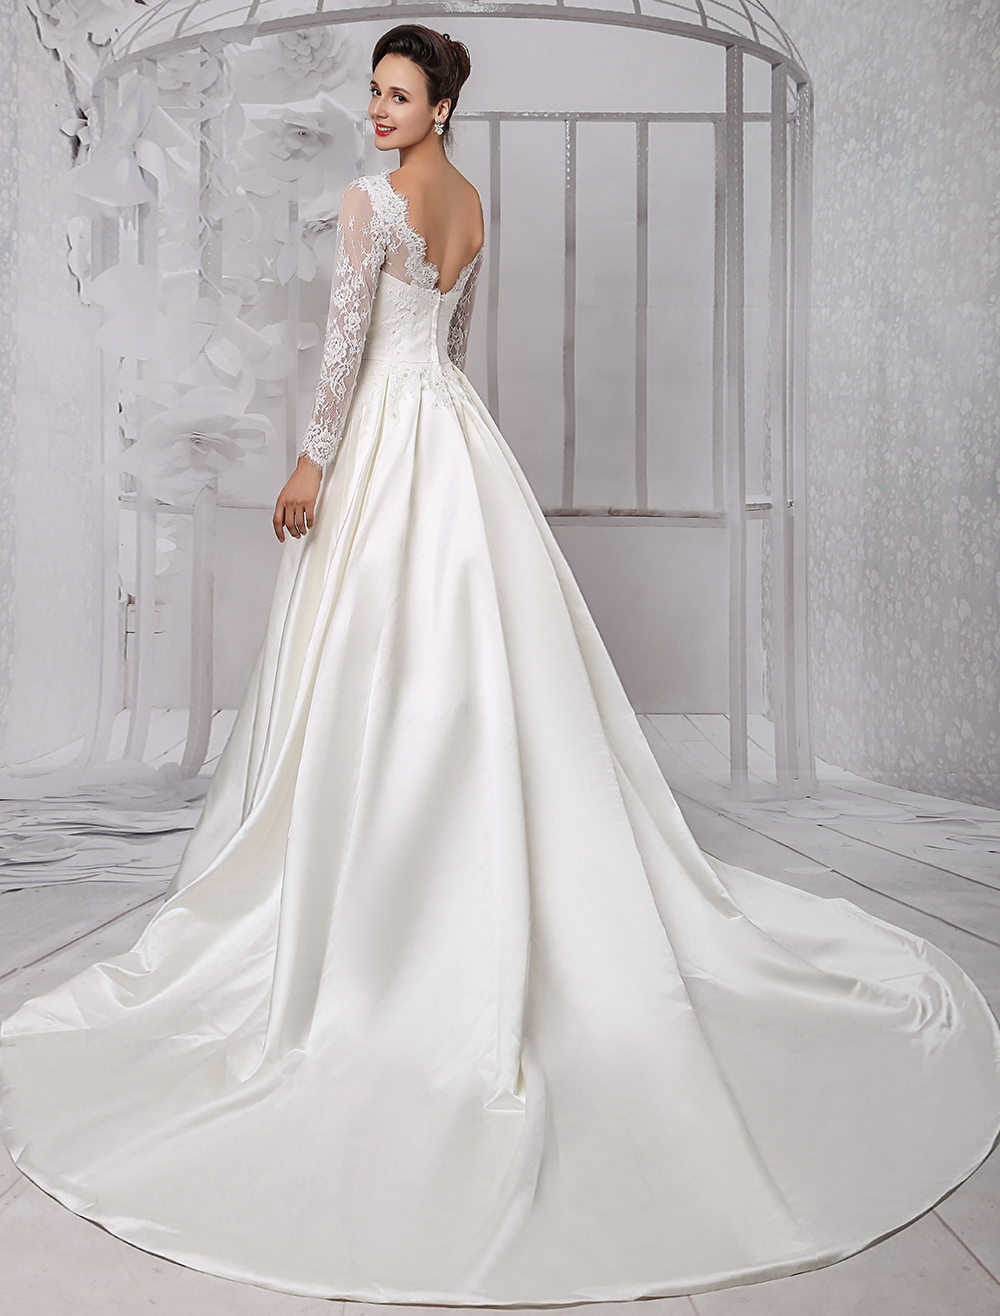 Long Sleeve Lace Wedding Dress Bridal Gown With Cathedral Train Milanoo